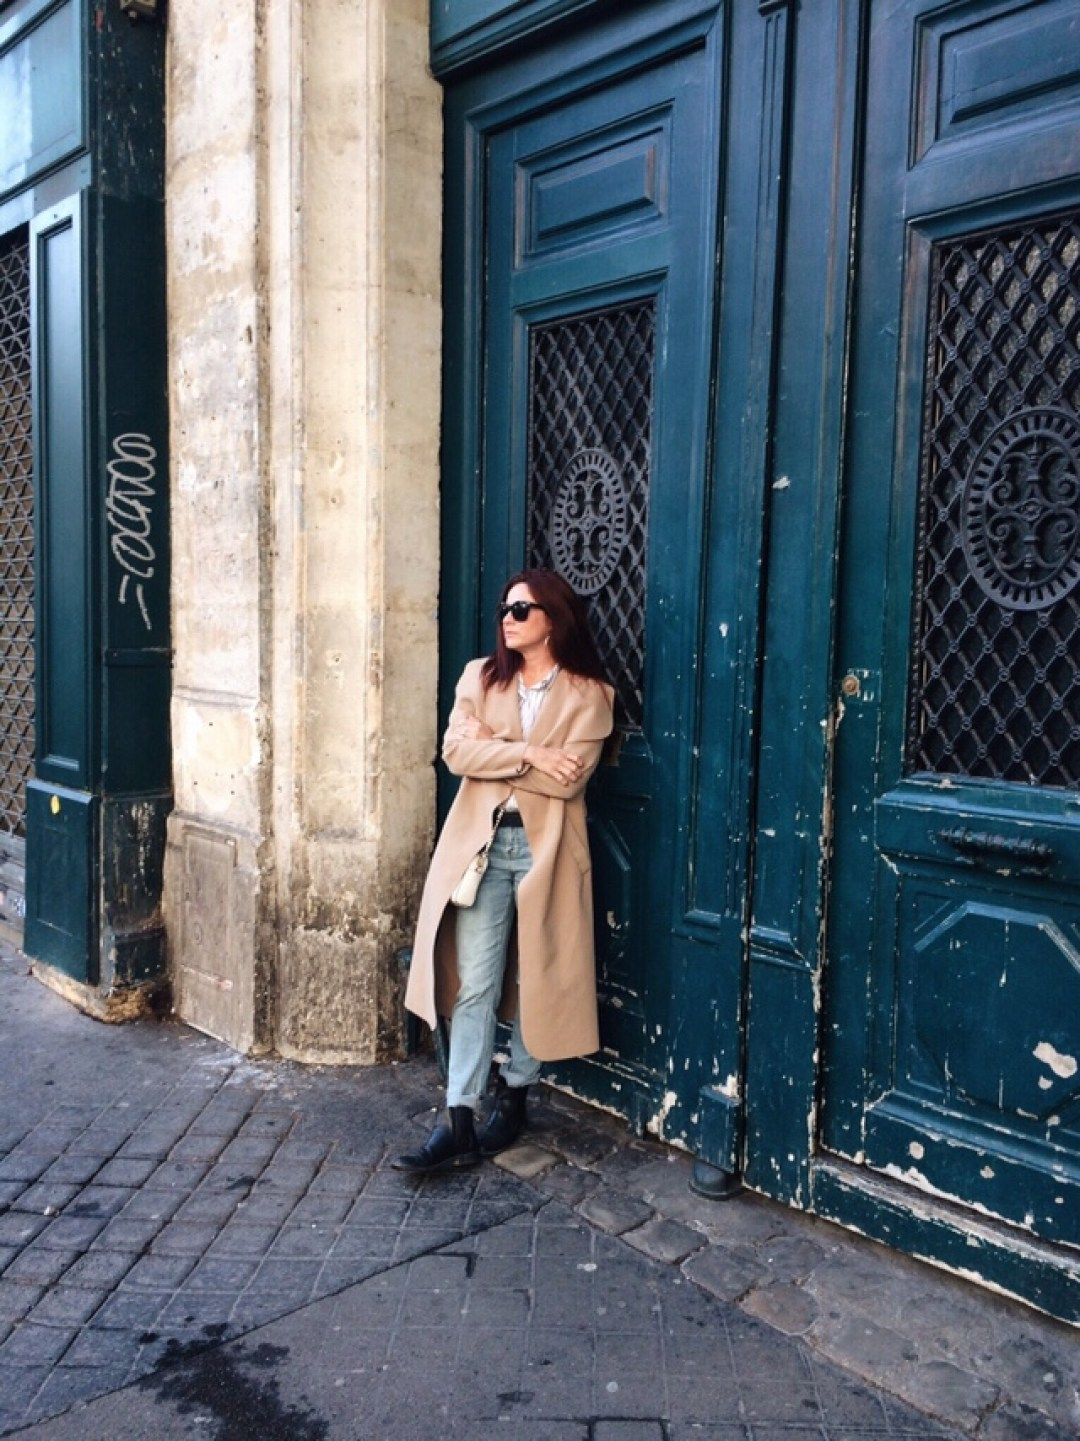 paris, teal doors, wrap duster, straight jeans, chelsea boots, striped shirt, casual style